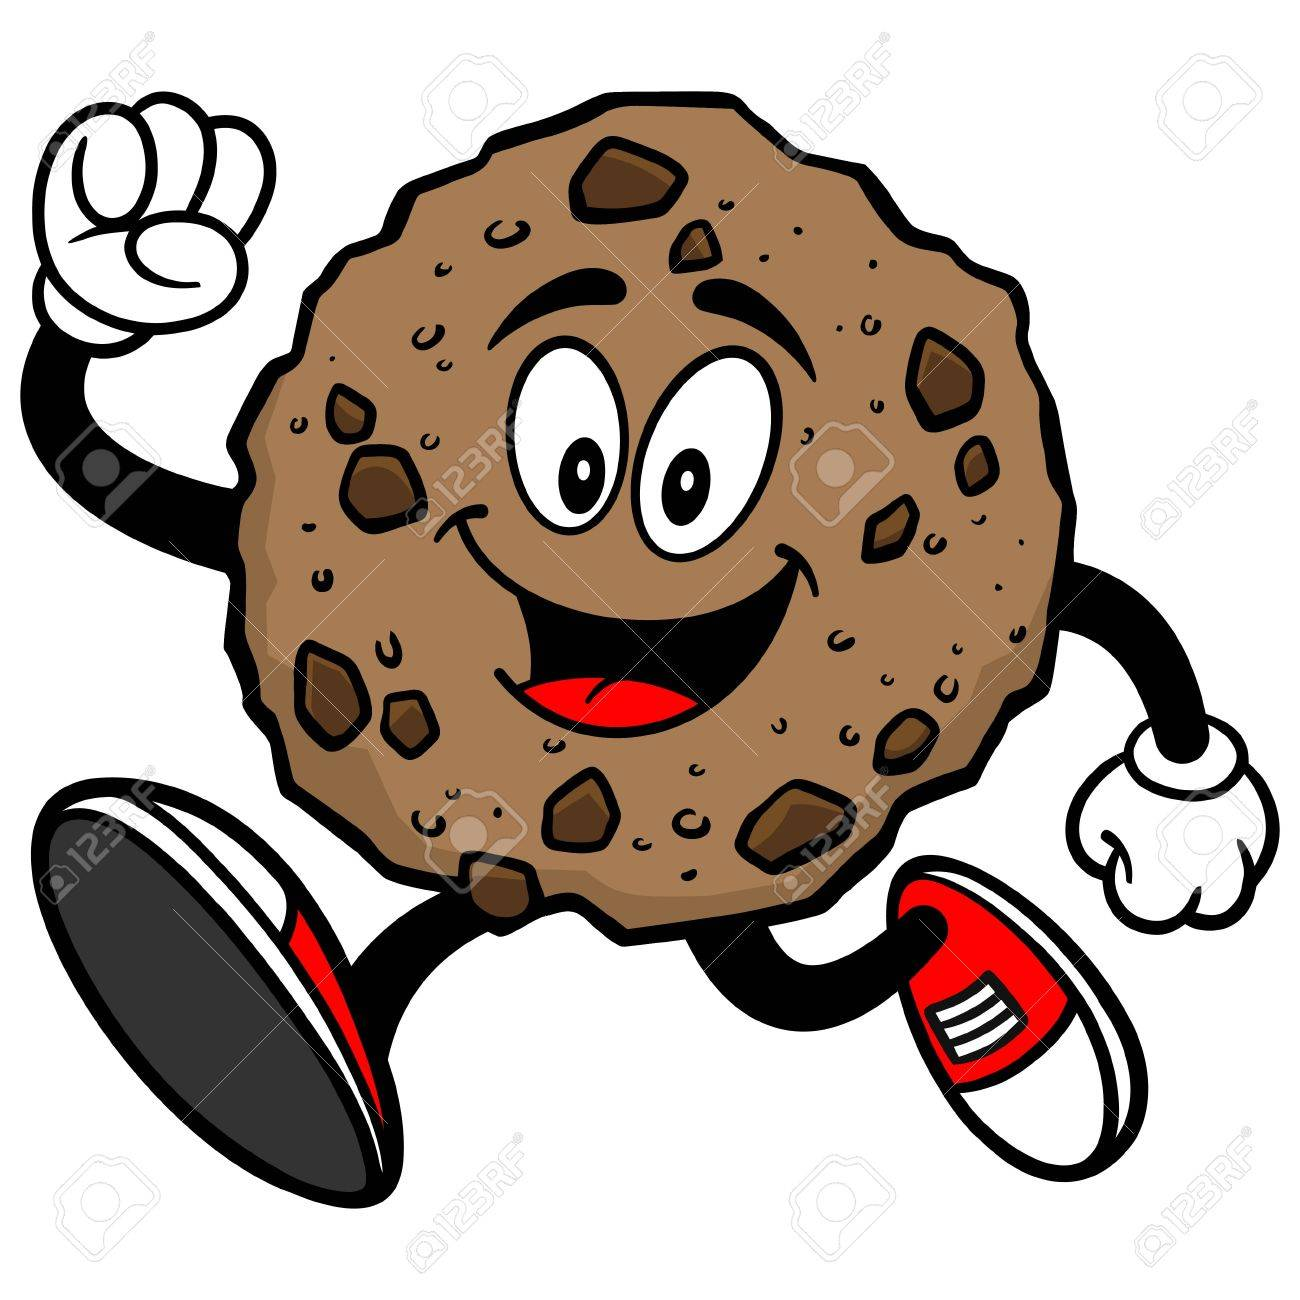 chocolate chip cookie running royalty free cliparts vectors and rh 123rf com chocolate chip cookie clip art free